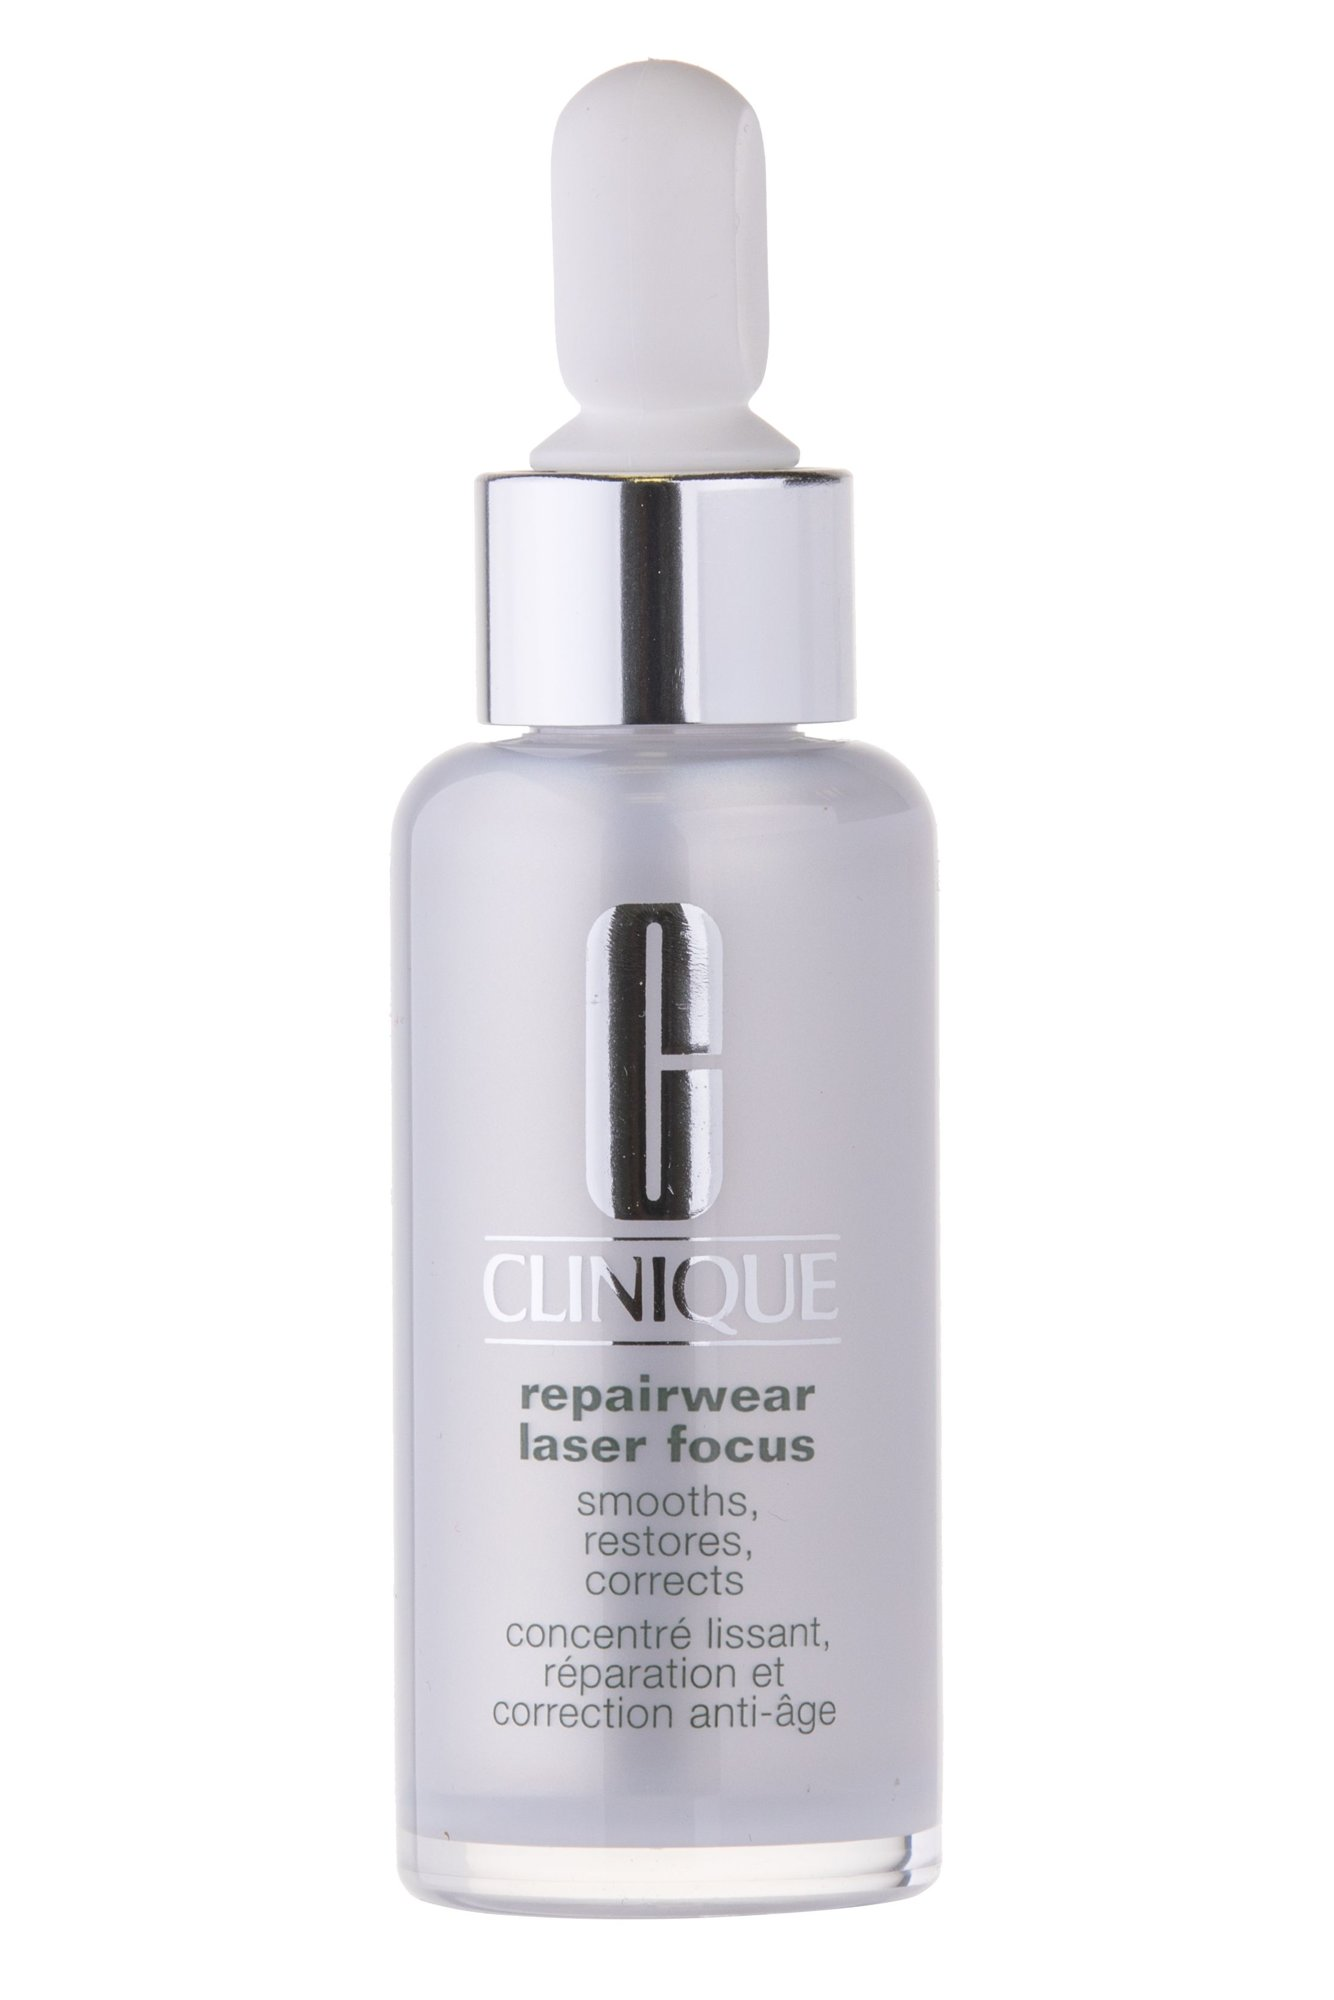 Clinique Repairwear Laser Focus Cosmetic 30ml